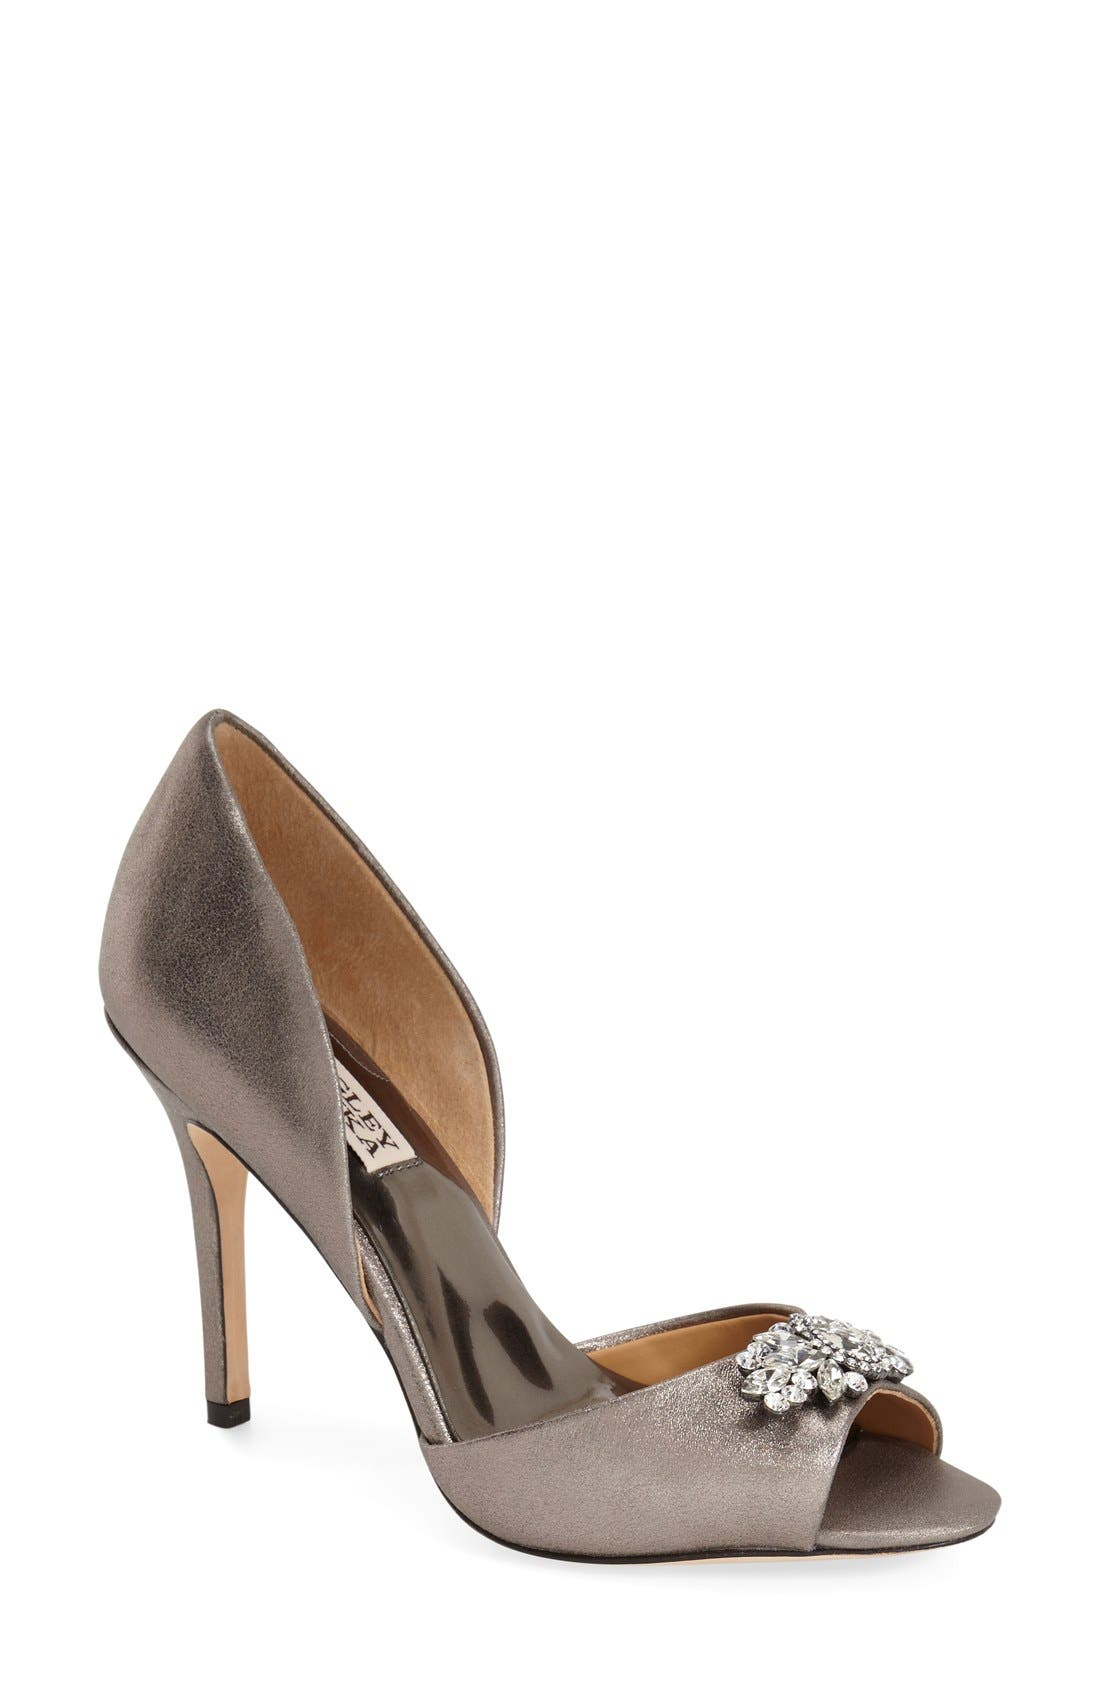 Main Image - Badgley Mischka 'Sugar' d'Orsay Pump (Women)